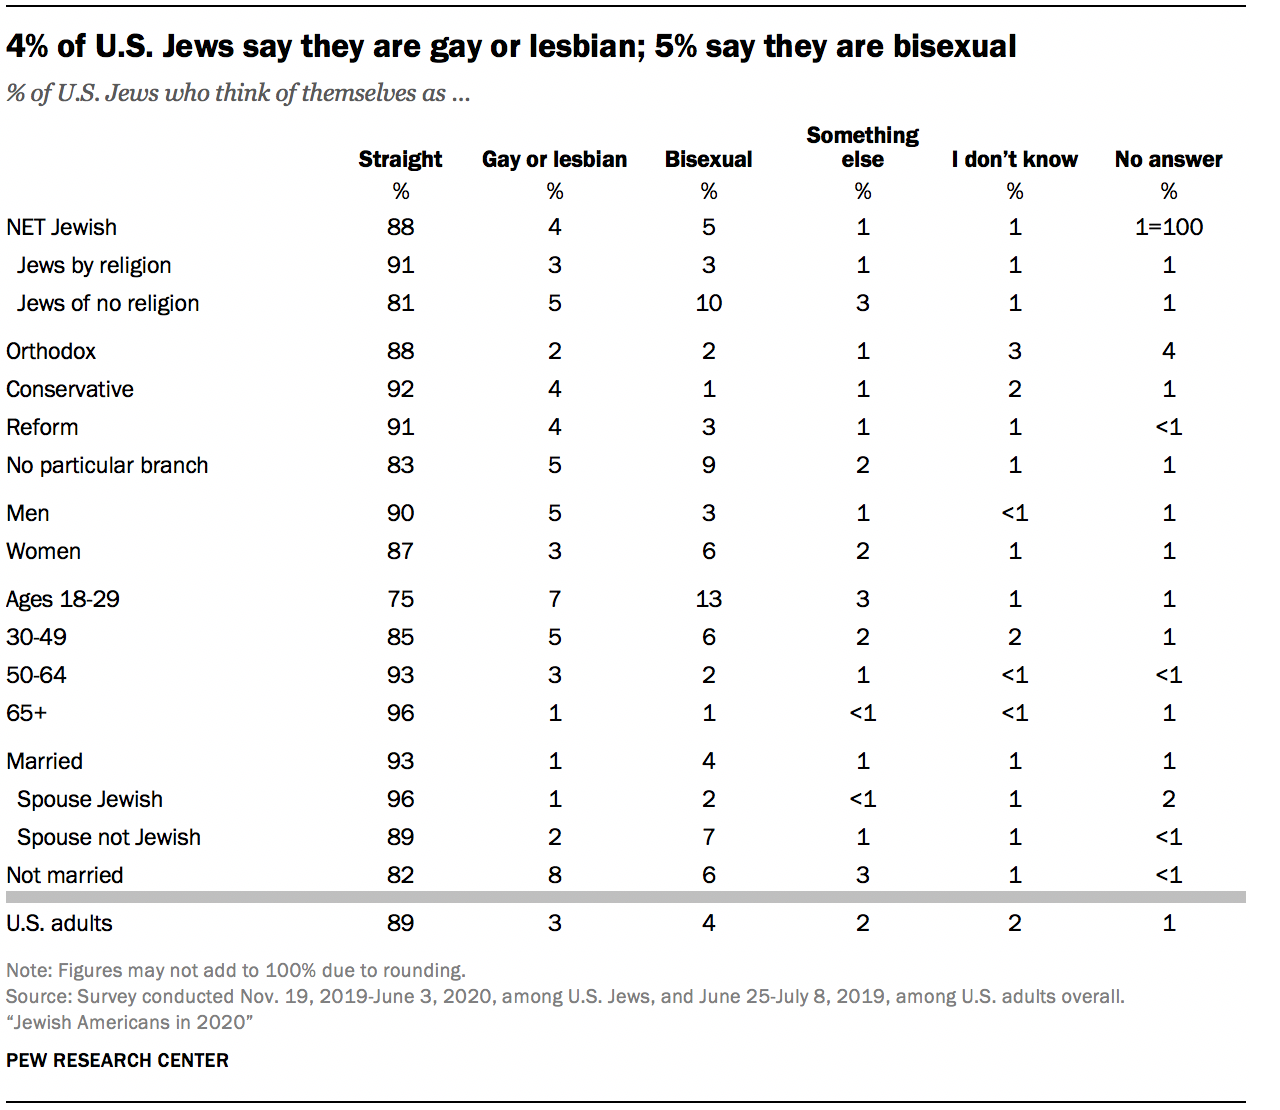 4% of U.S. Jews say they are gay or lesbian; 5% say they are bisexual